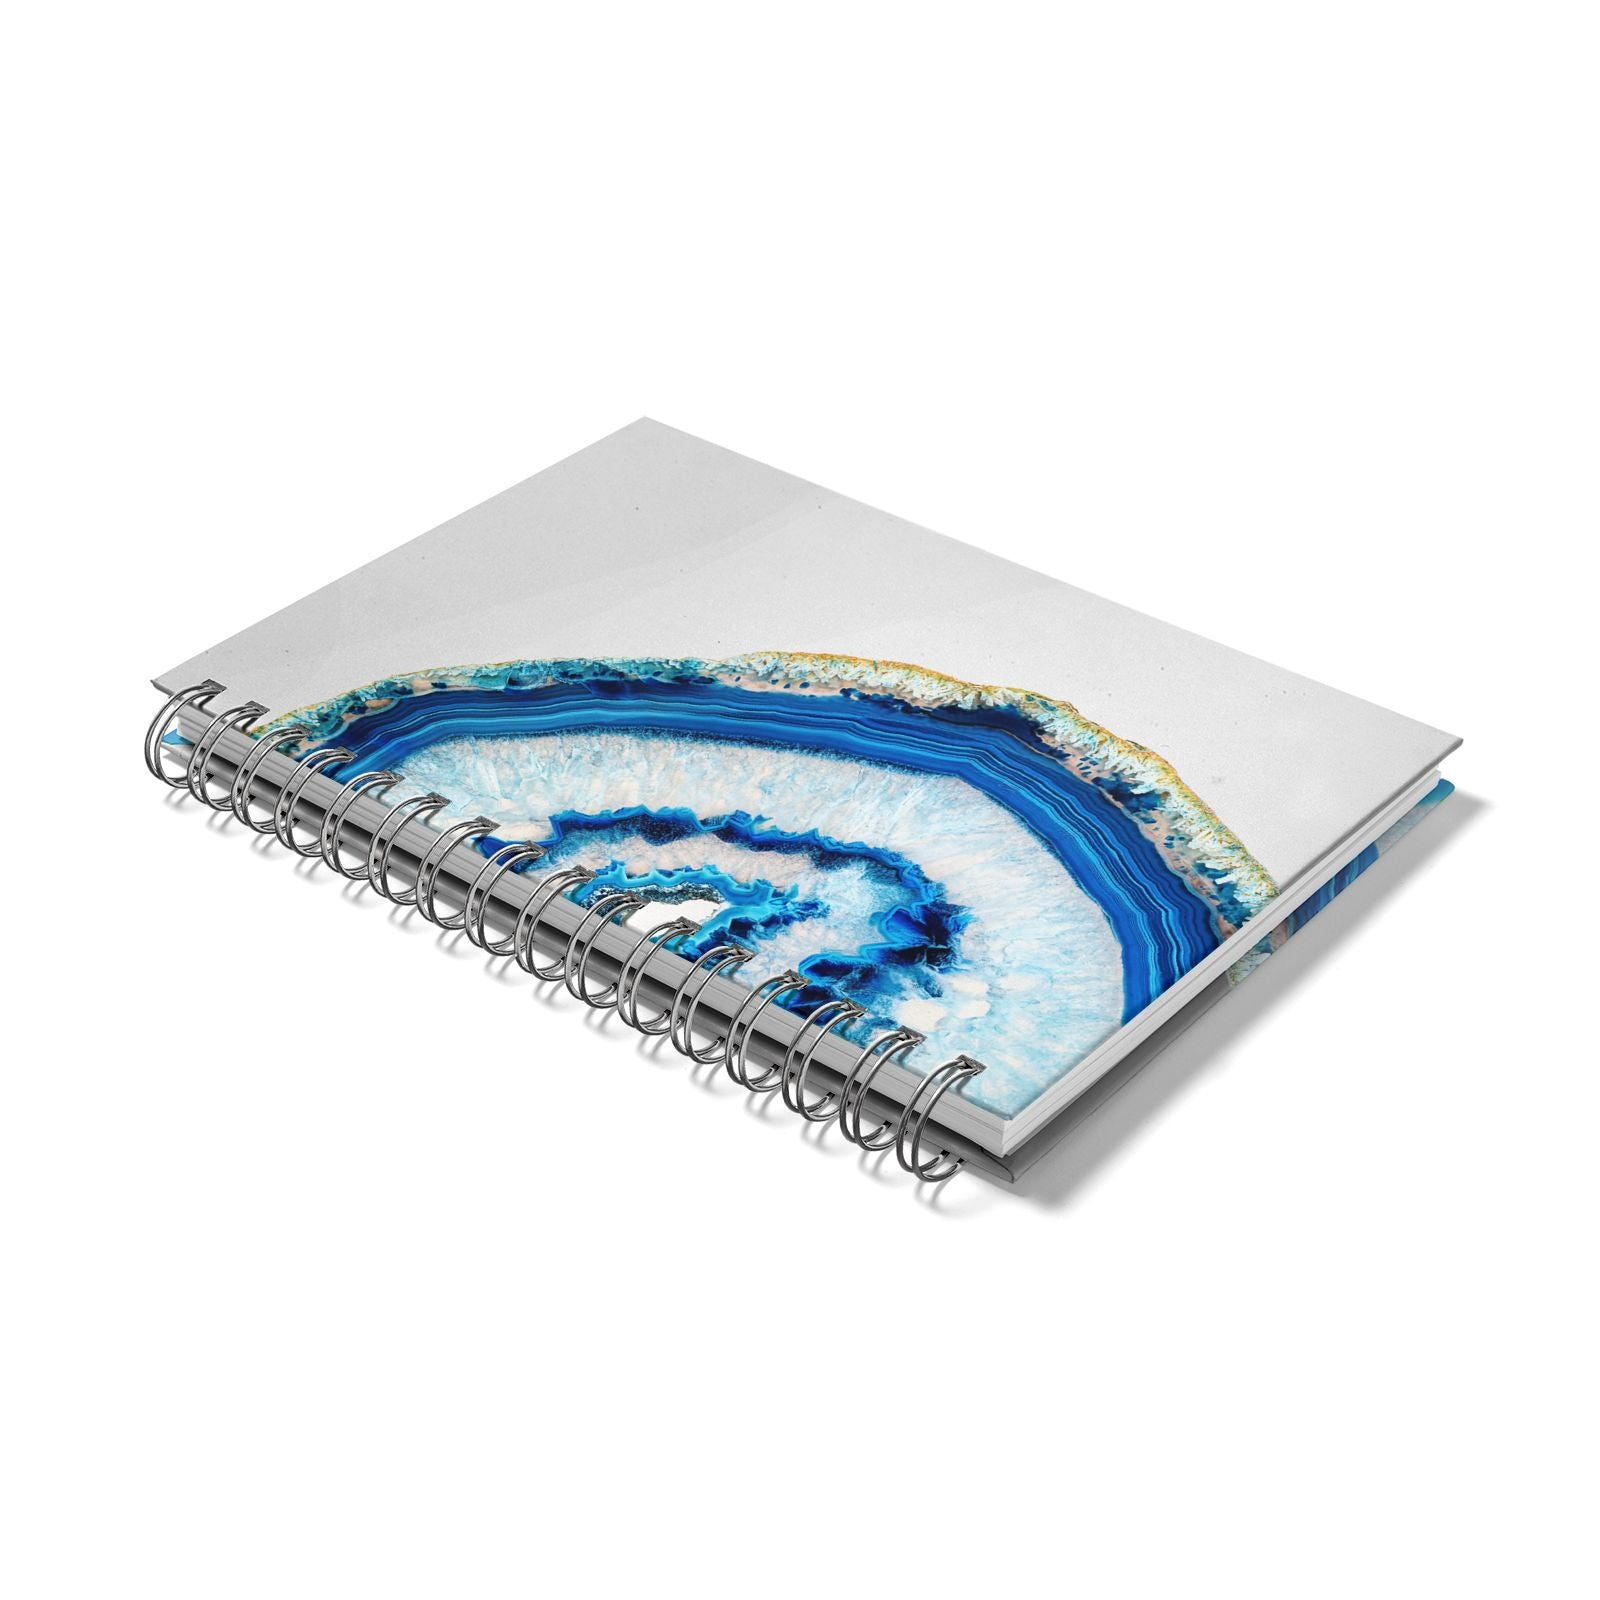 Agate Dark Blue and Turquoise Notebook with Silver Coil Laid Flat